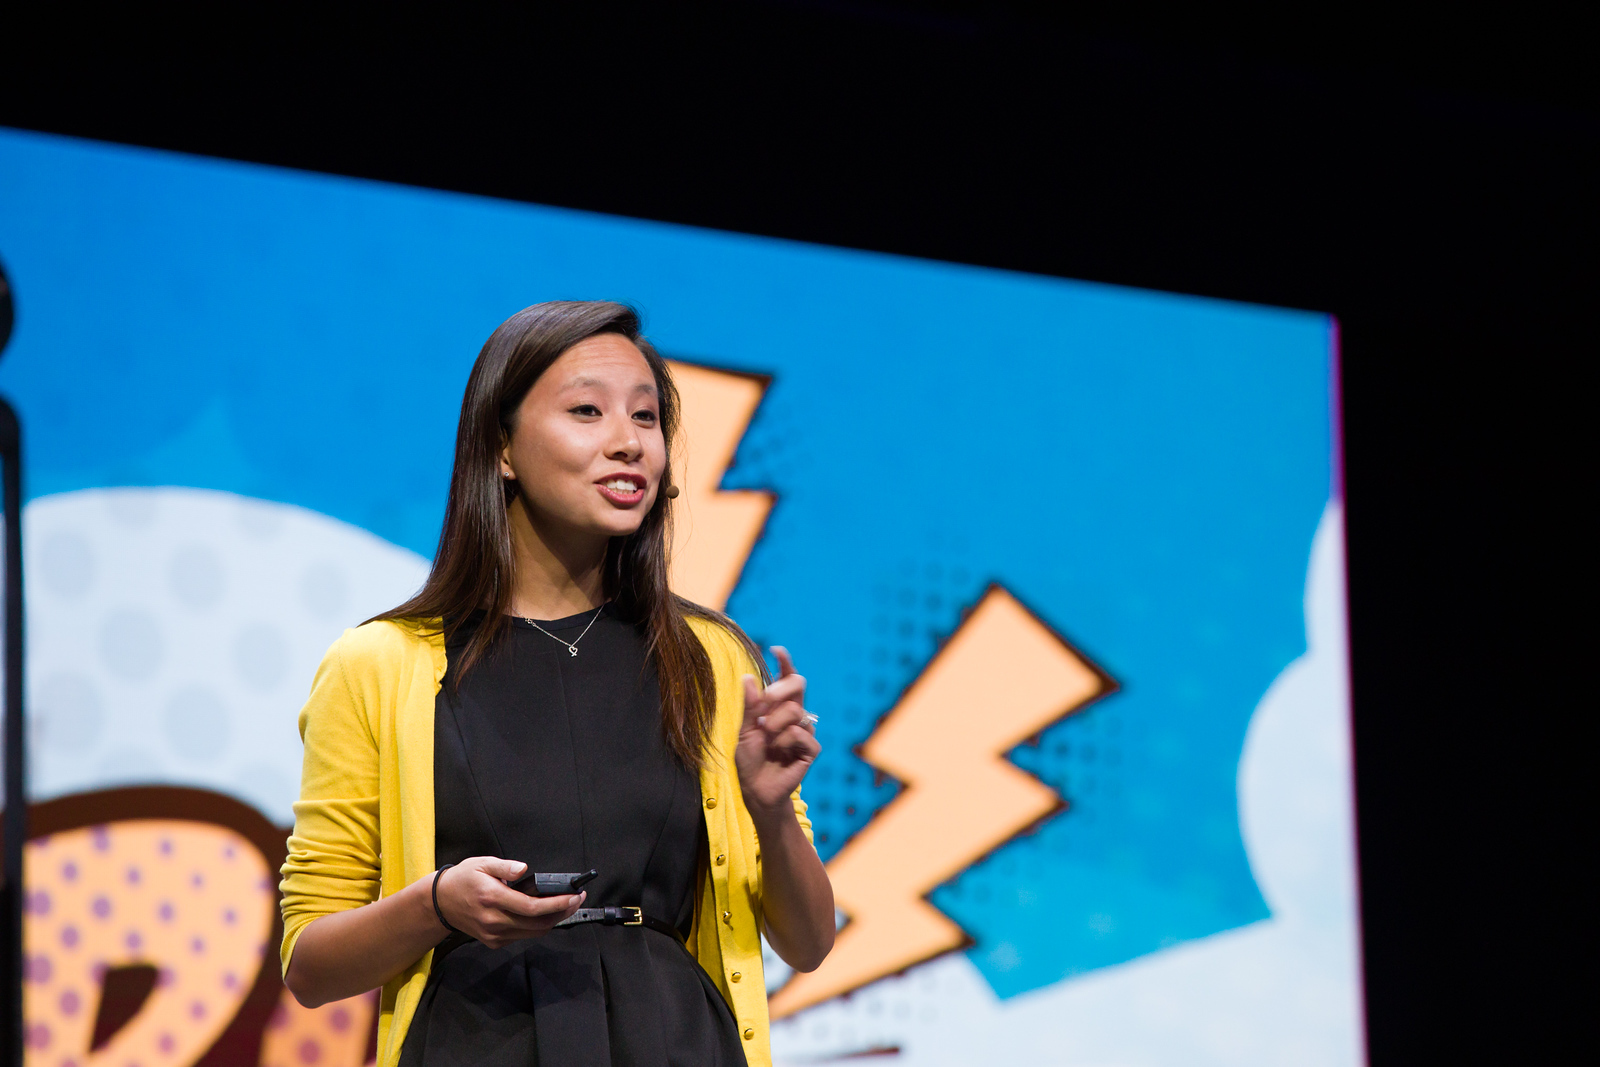 The State of the Cloud Byron Deeter PARTNER / BESSEMER VENTURE PARTNERS Kristina Shen VICE PRESIDENT / BESSEMER VENTURE PARTNERS